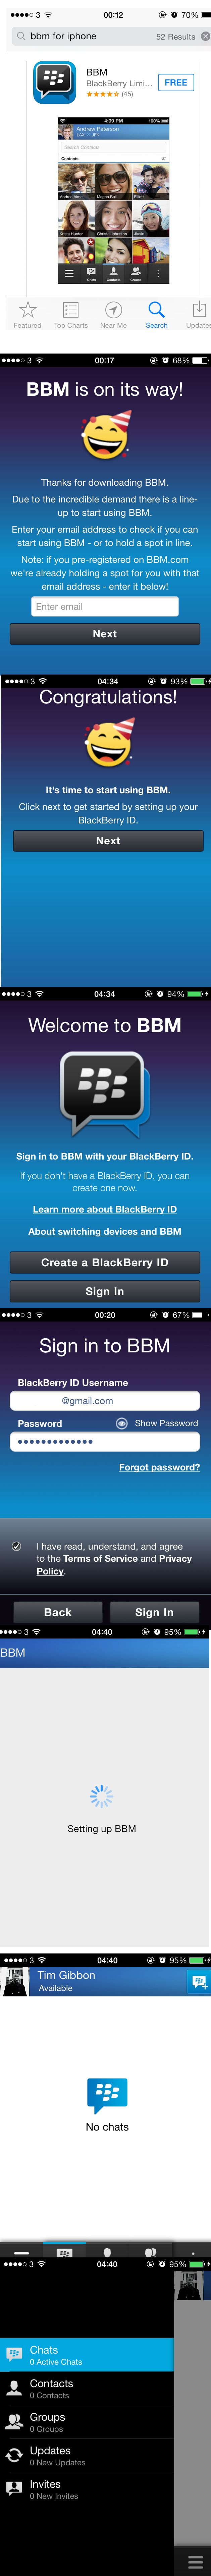 Canadian technology and telecoms company #BlackBerry has taken another shot at rolling out #BBM for #Android and the #iPhone.